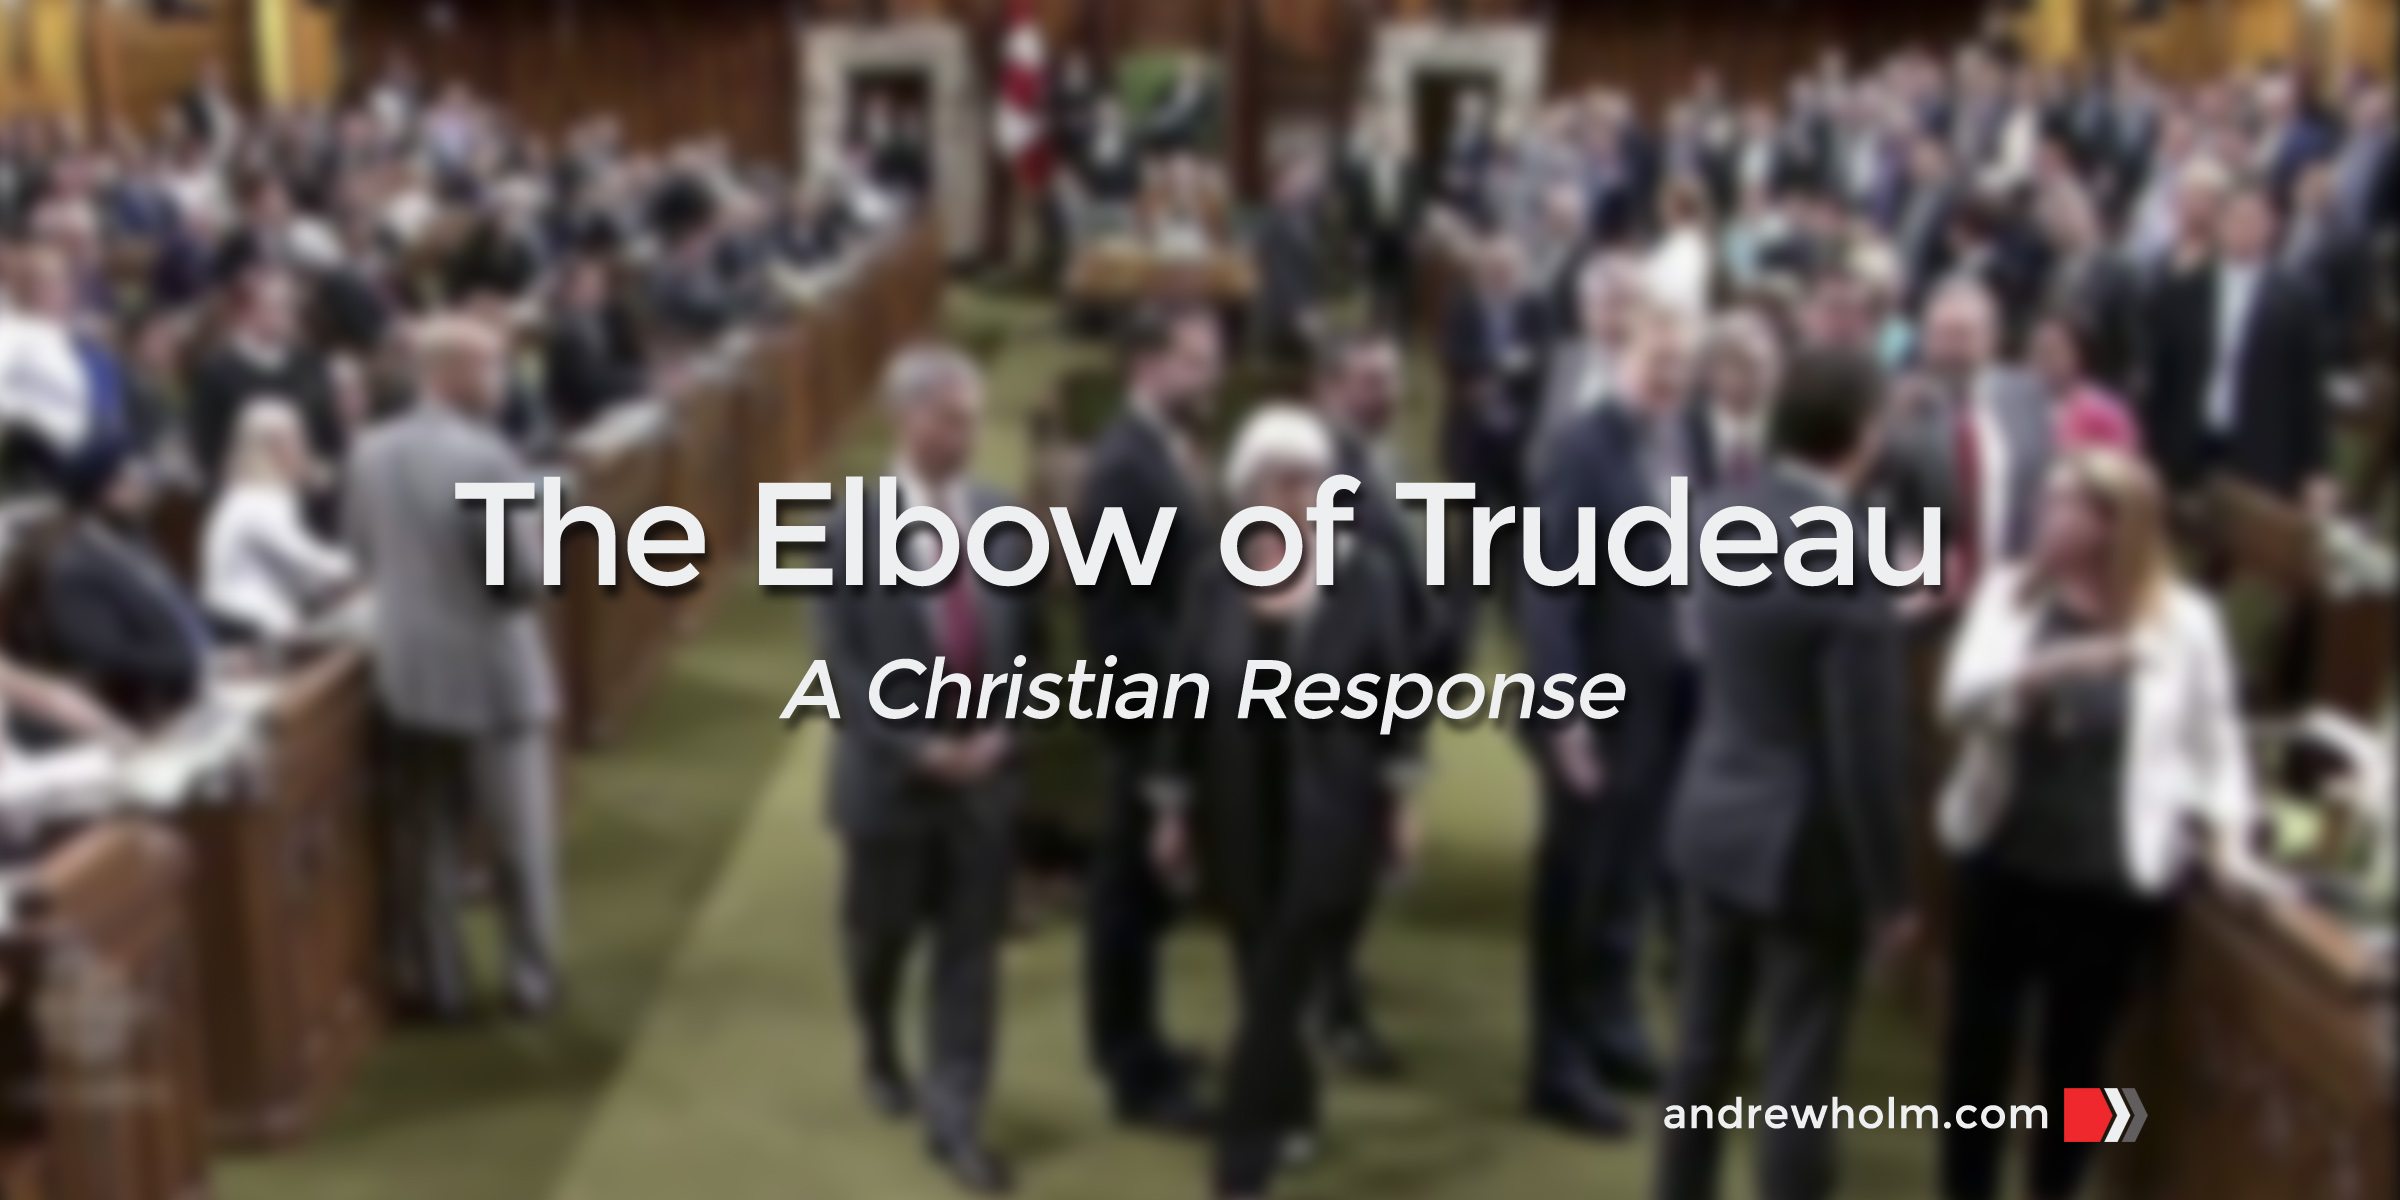 http://andrewholm.com/the-elbow-of-trudeau